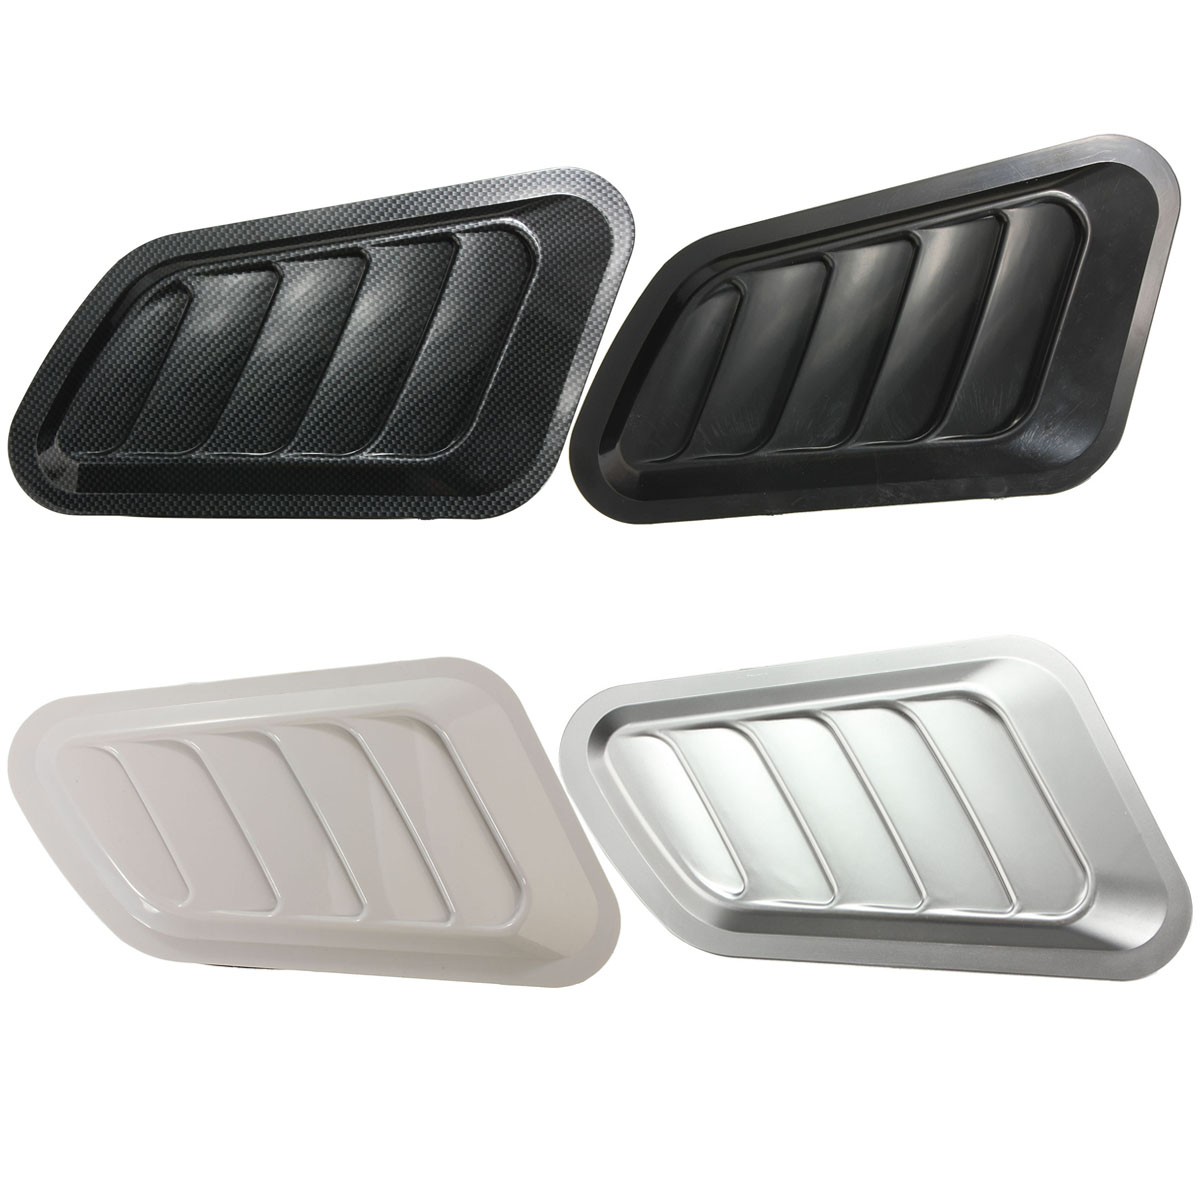 Good Price New 2x Four Colors Car Decorative Intake Scoop Turbo Bonnet Vent Cover Hood for Fender new 2x car decorative air flow intake scoop turbo bonnet vent cover hood for fender